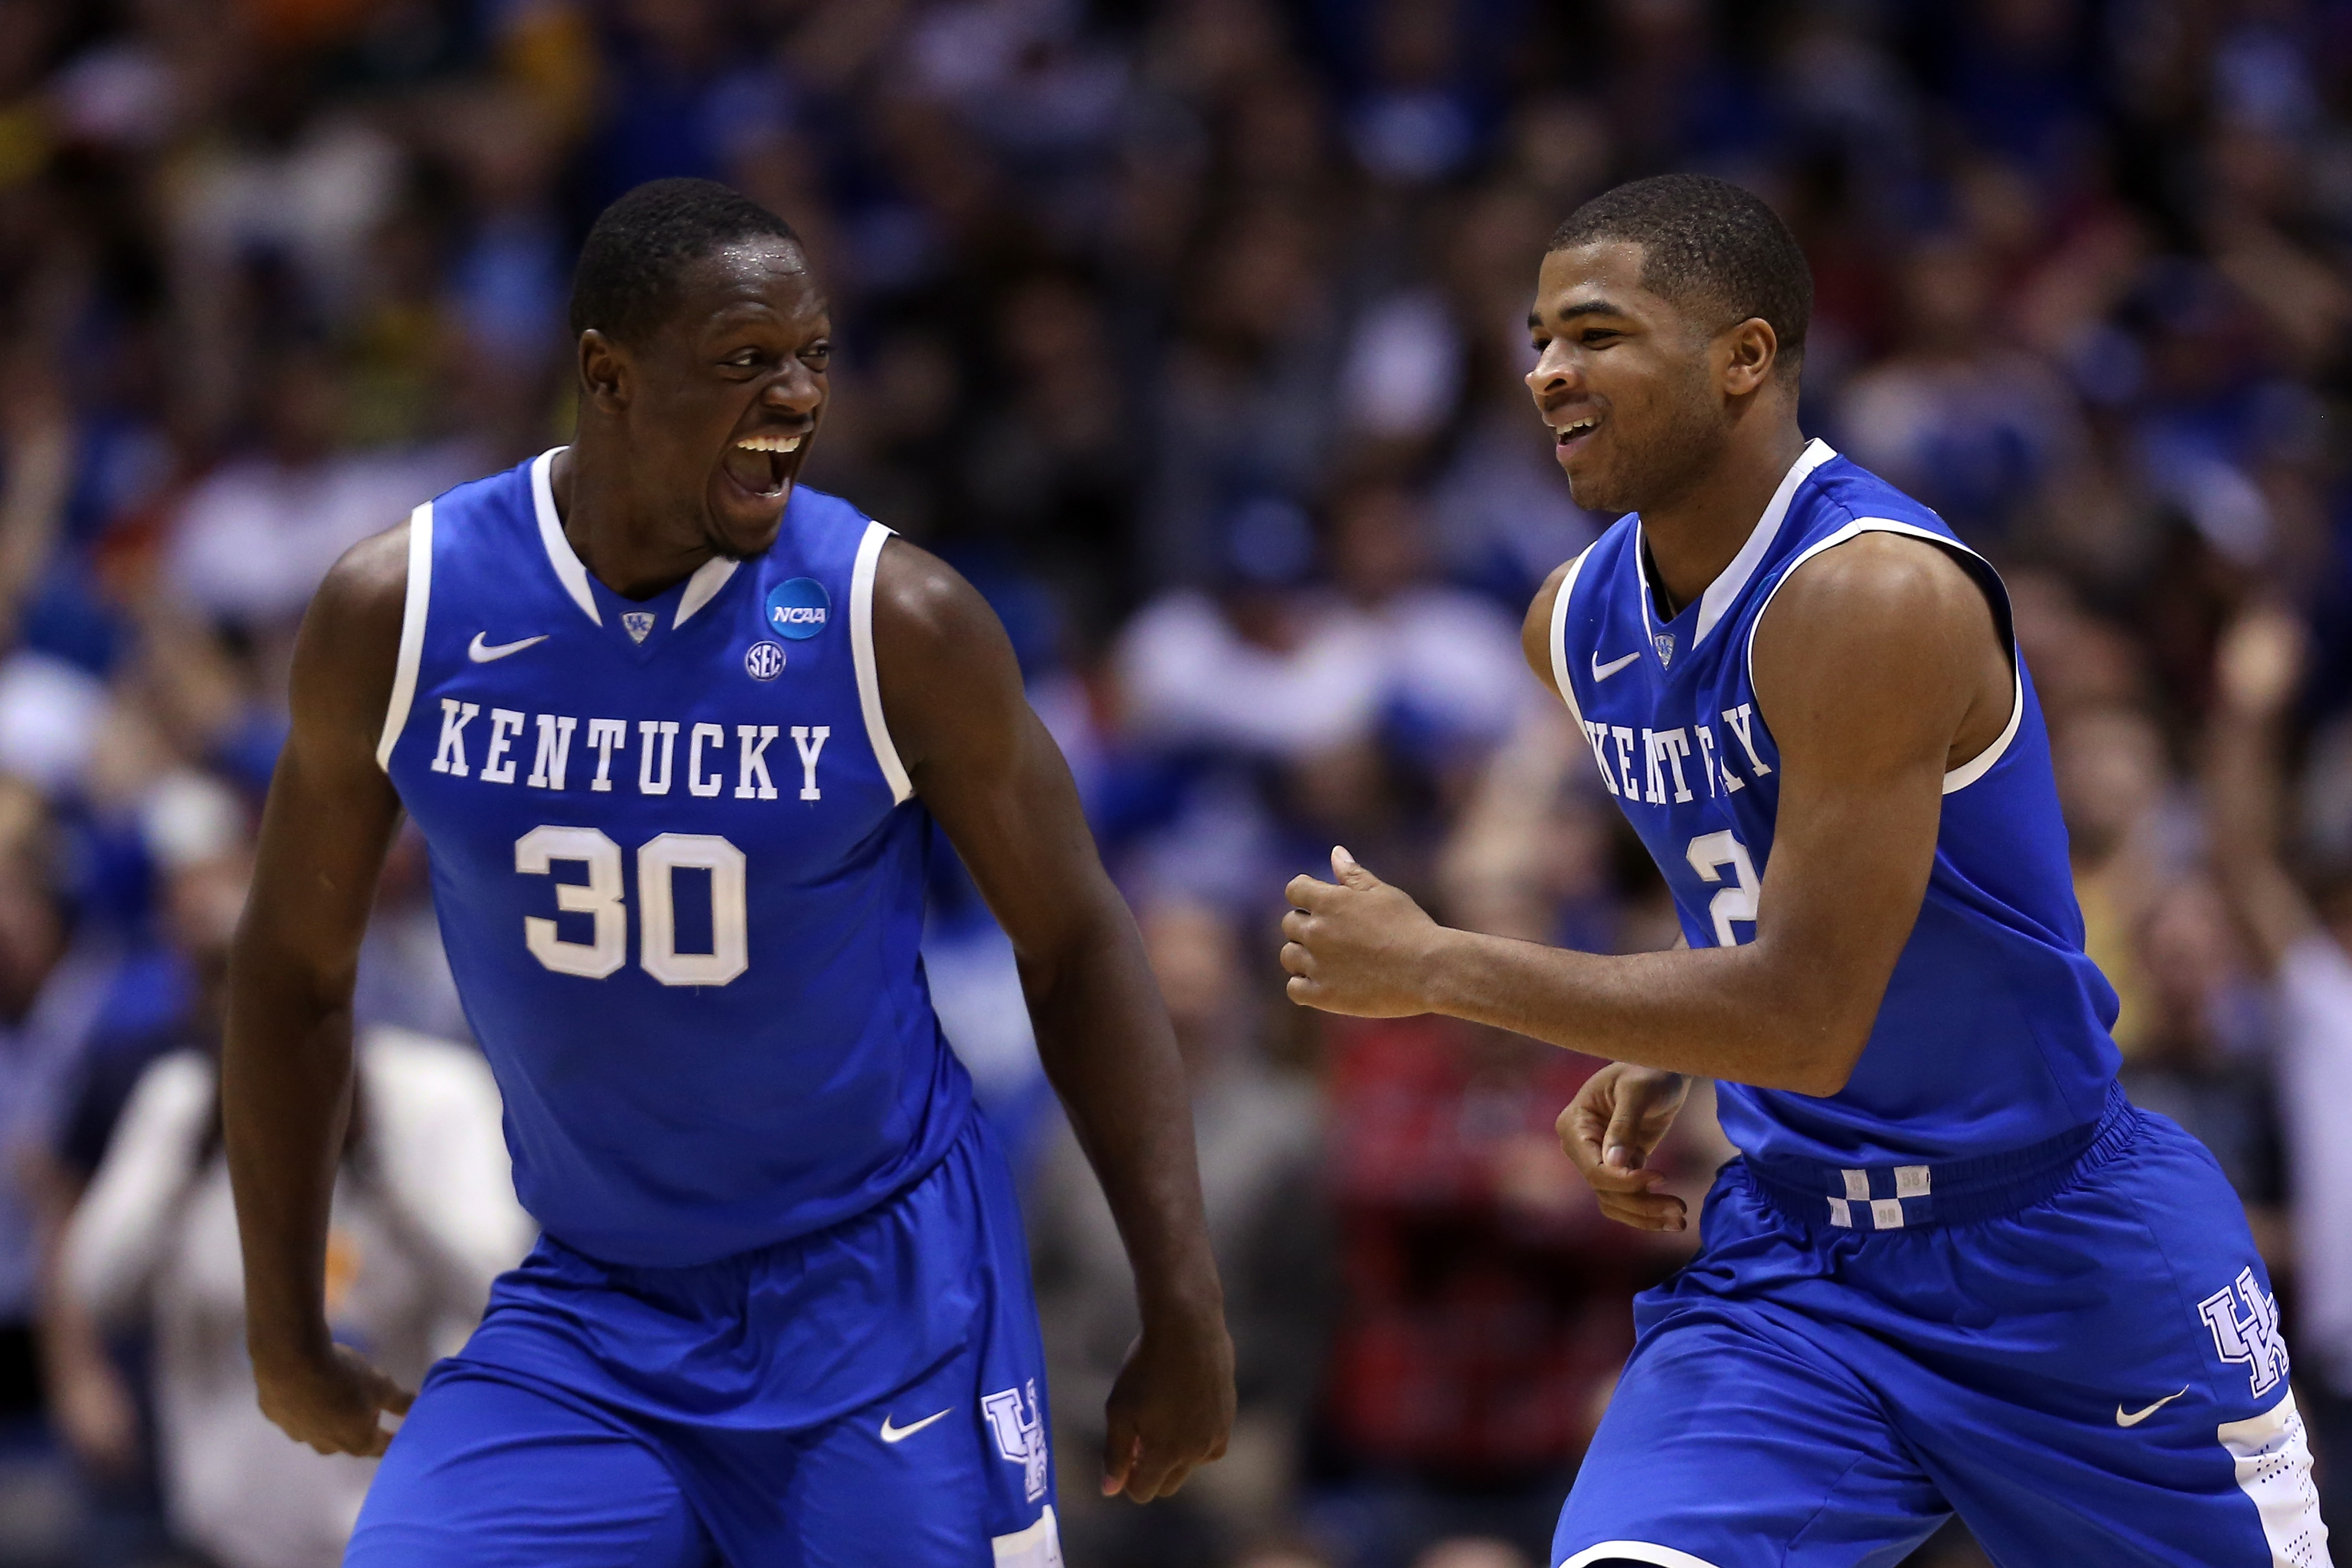 INDIANAPOLIS, IN - MARCH 30:  Aaron Harrison #2 of the Kentucky Wildcats celebrates with teammate Julius Randle #30 after defeating the Michigan Wolverines 75 to 72 in the midwest regional final of the 2014 NCAA Men's Basketball Tournament at Lucas Oil Stadium on March 30, 2014 in Indianapolis, Indiana.  (Photo by Jonathan Daniel/Getty Images)